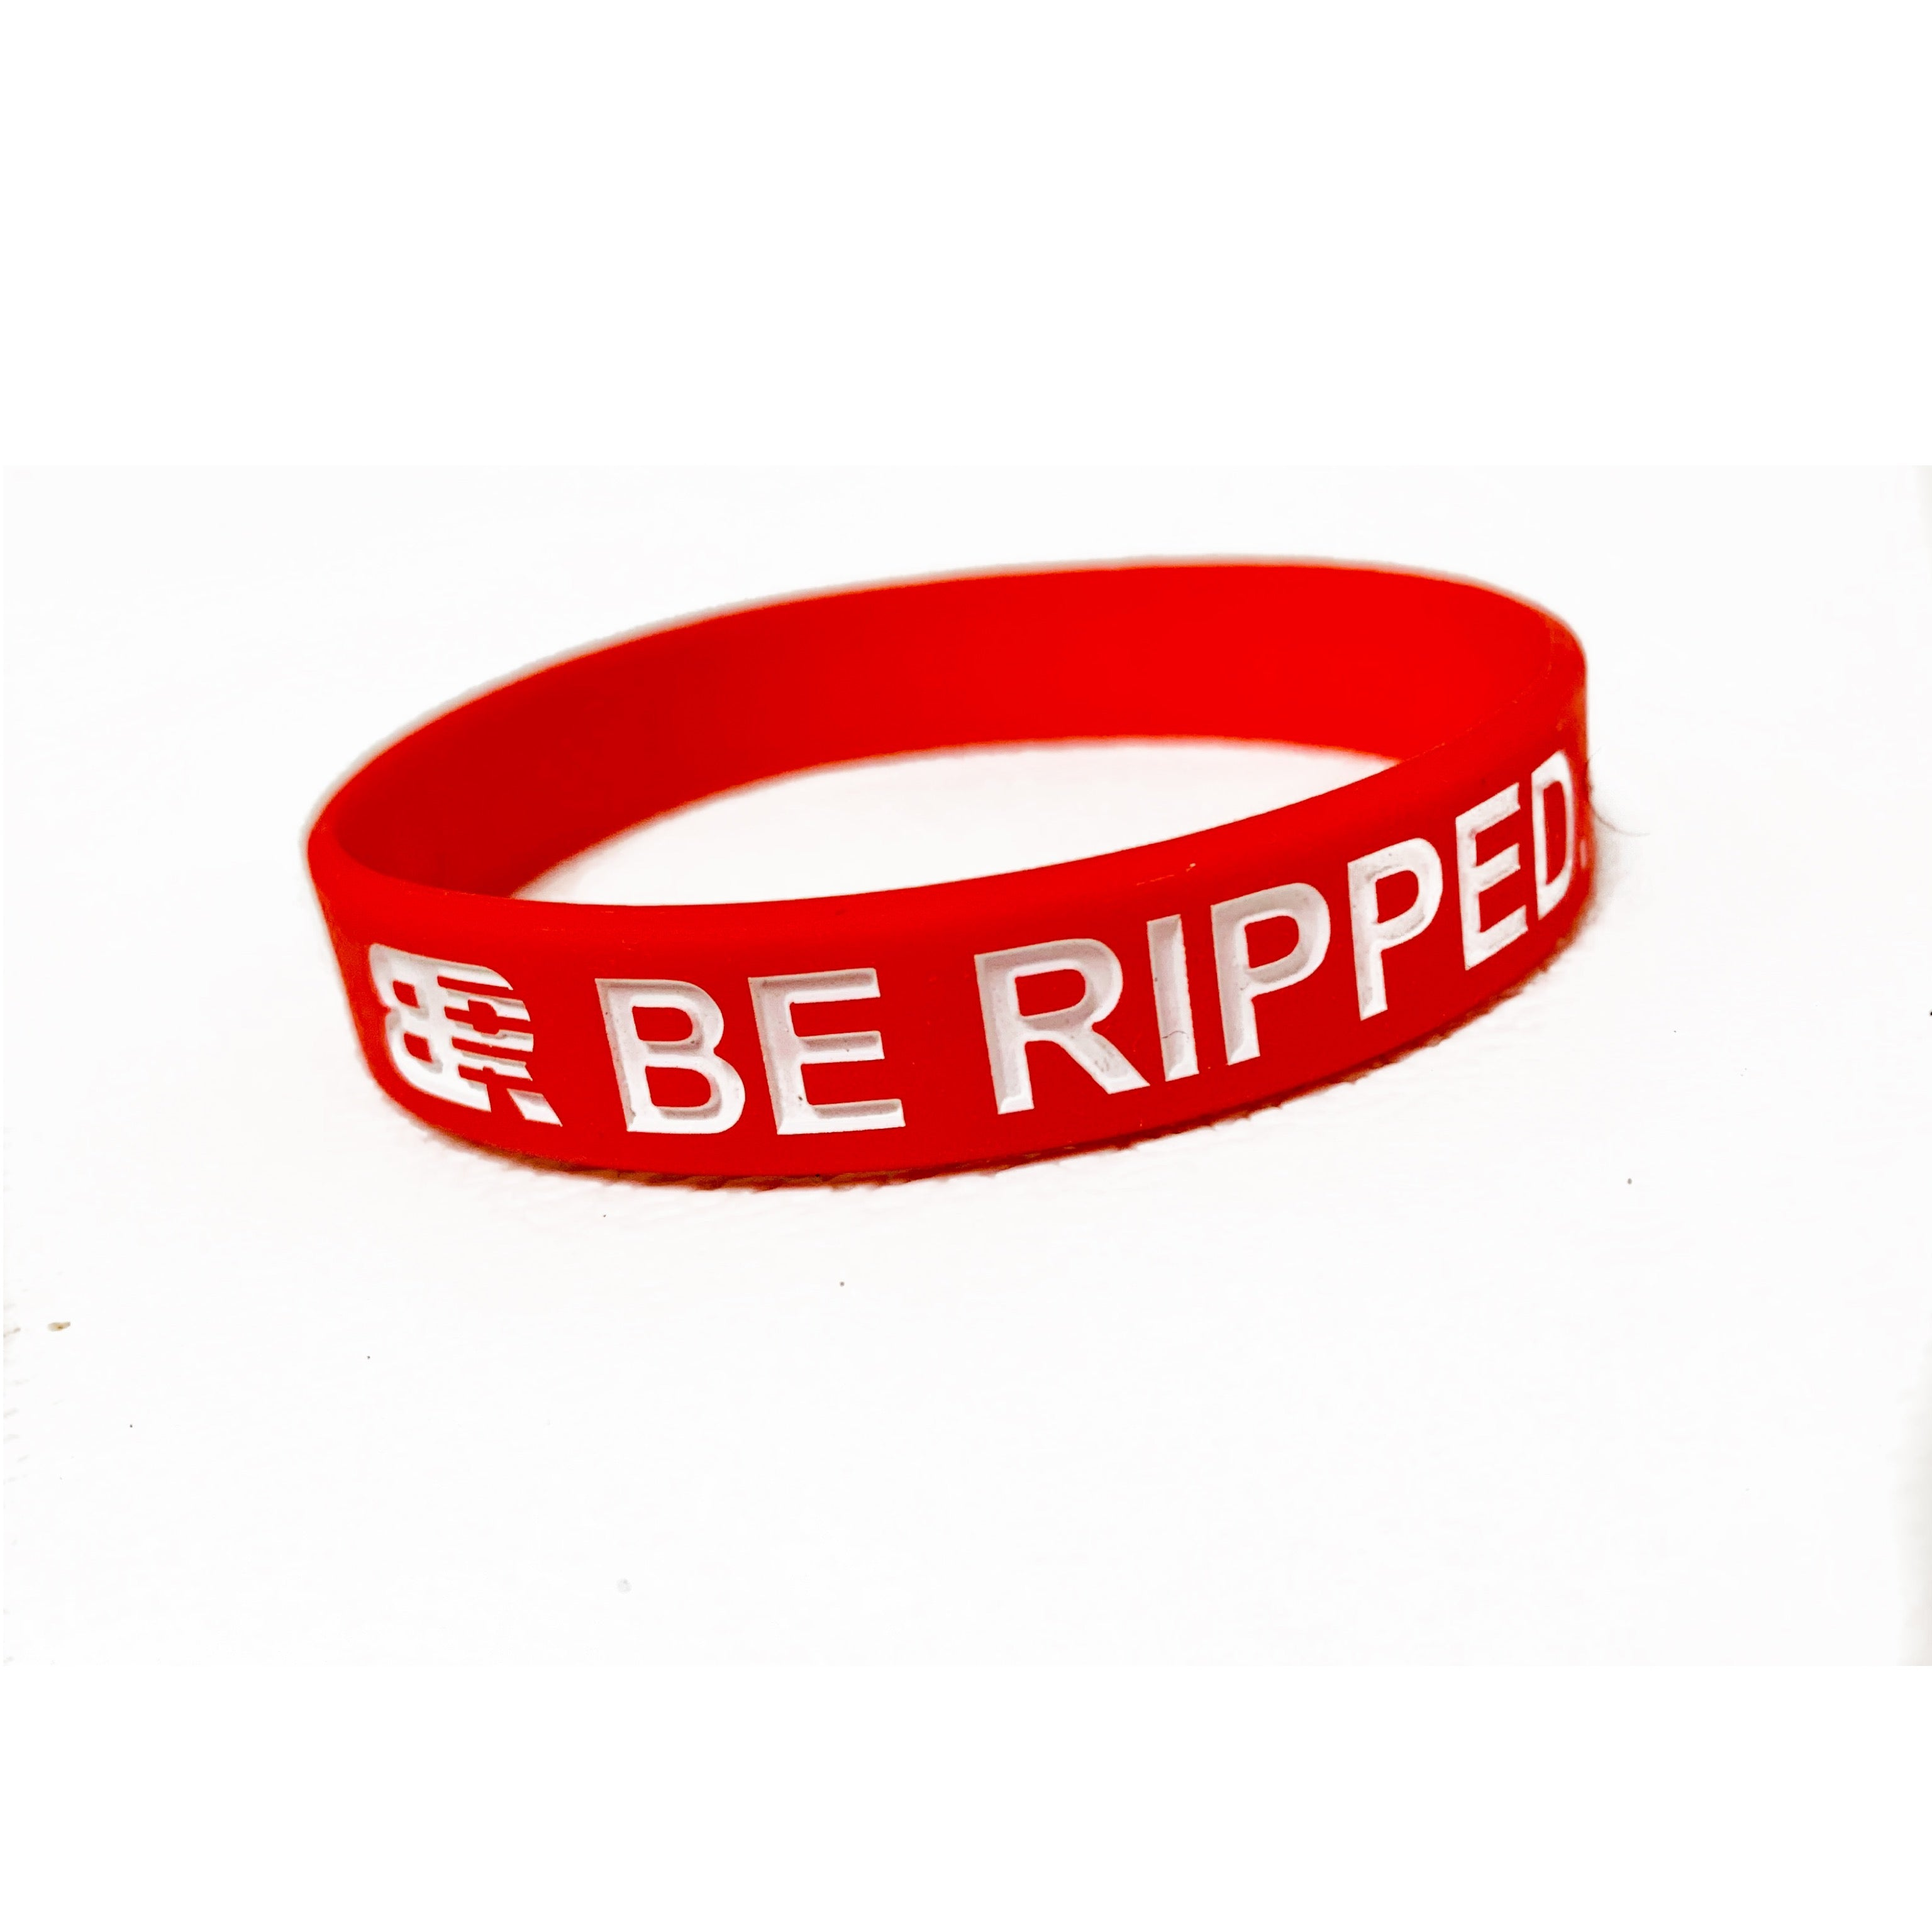 RED BE RIPPED.® WRISTBAND